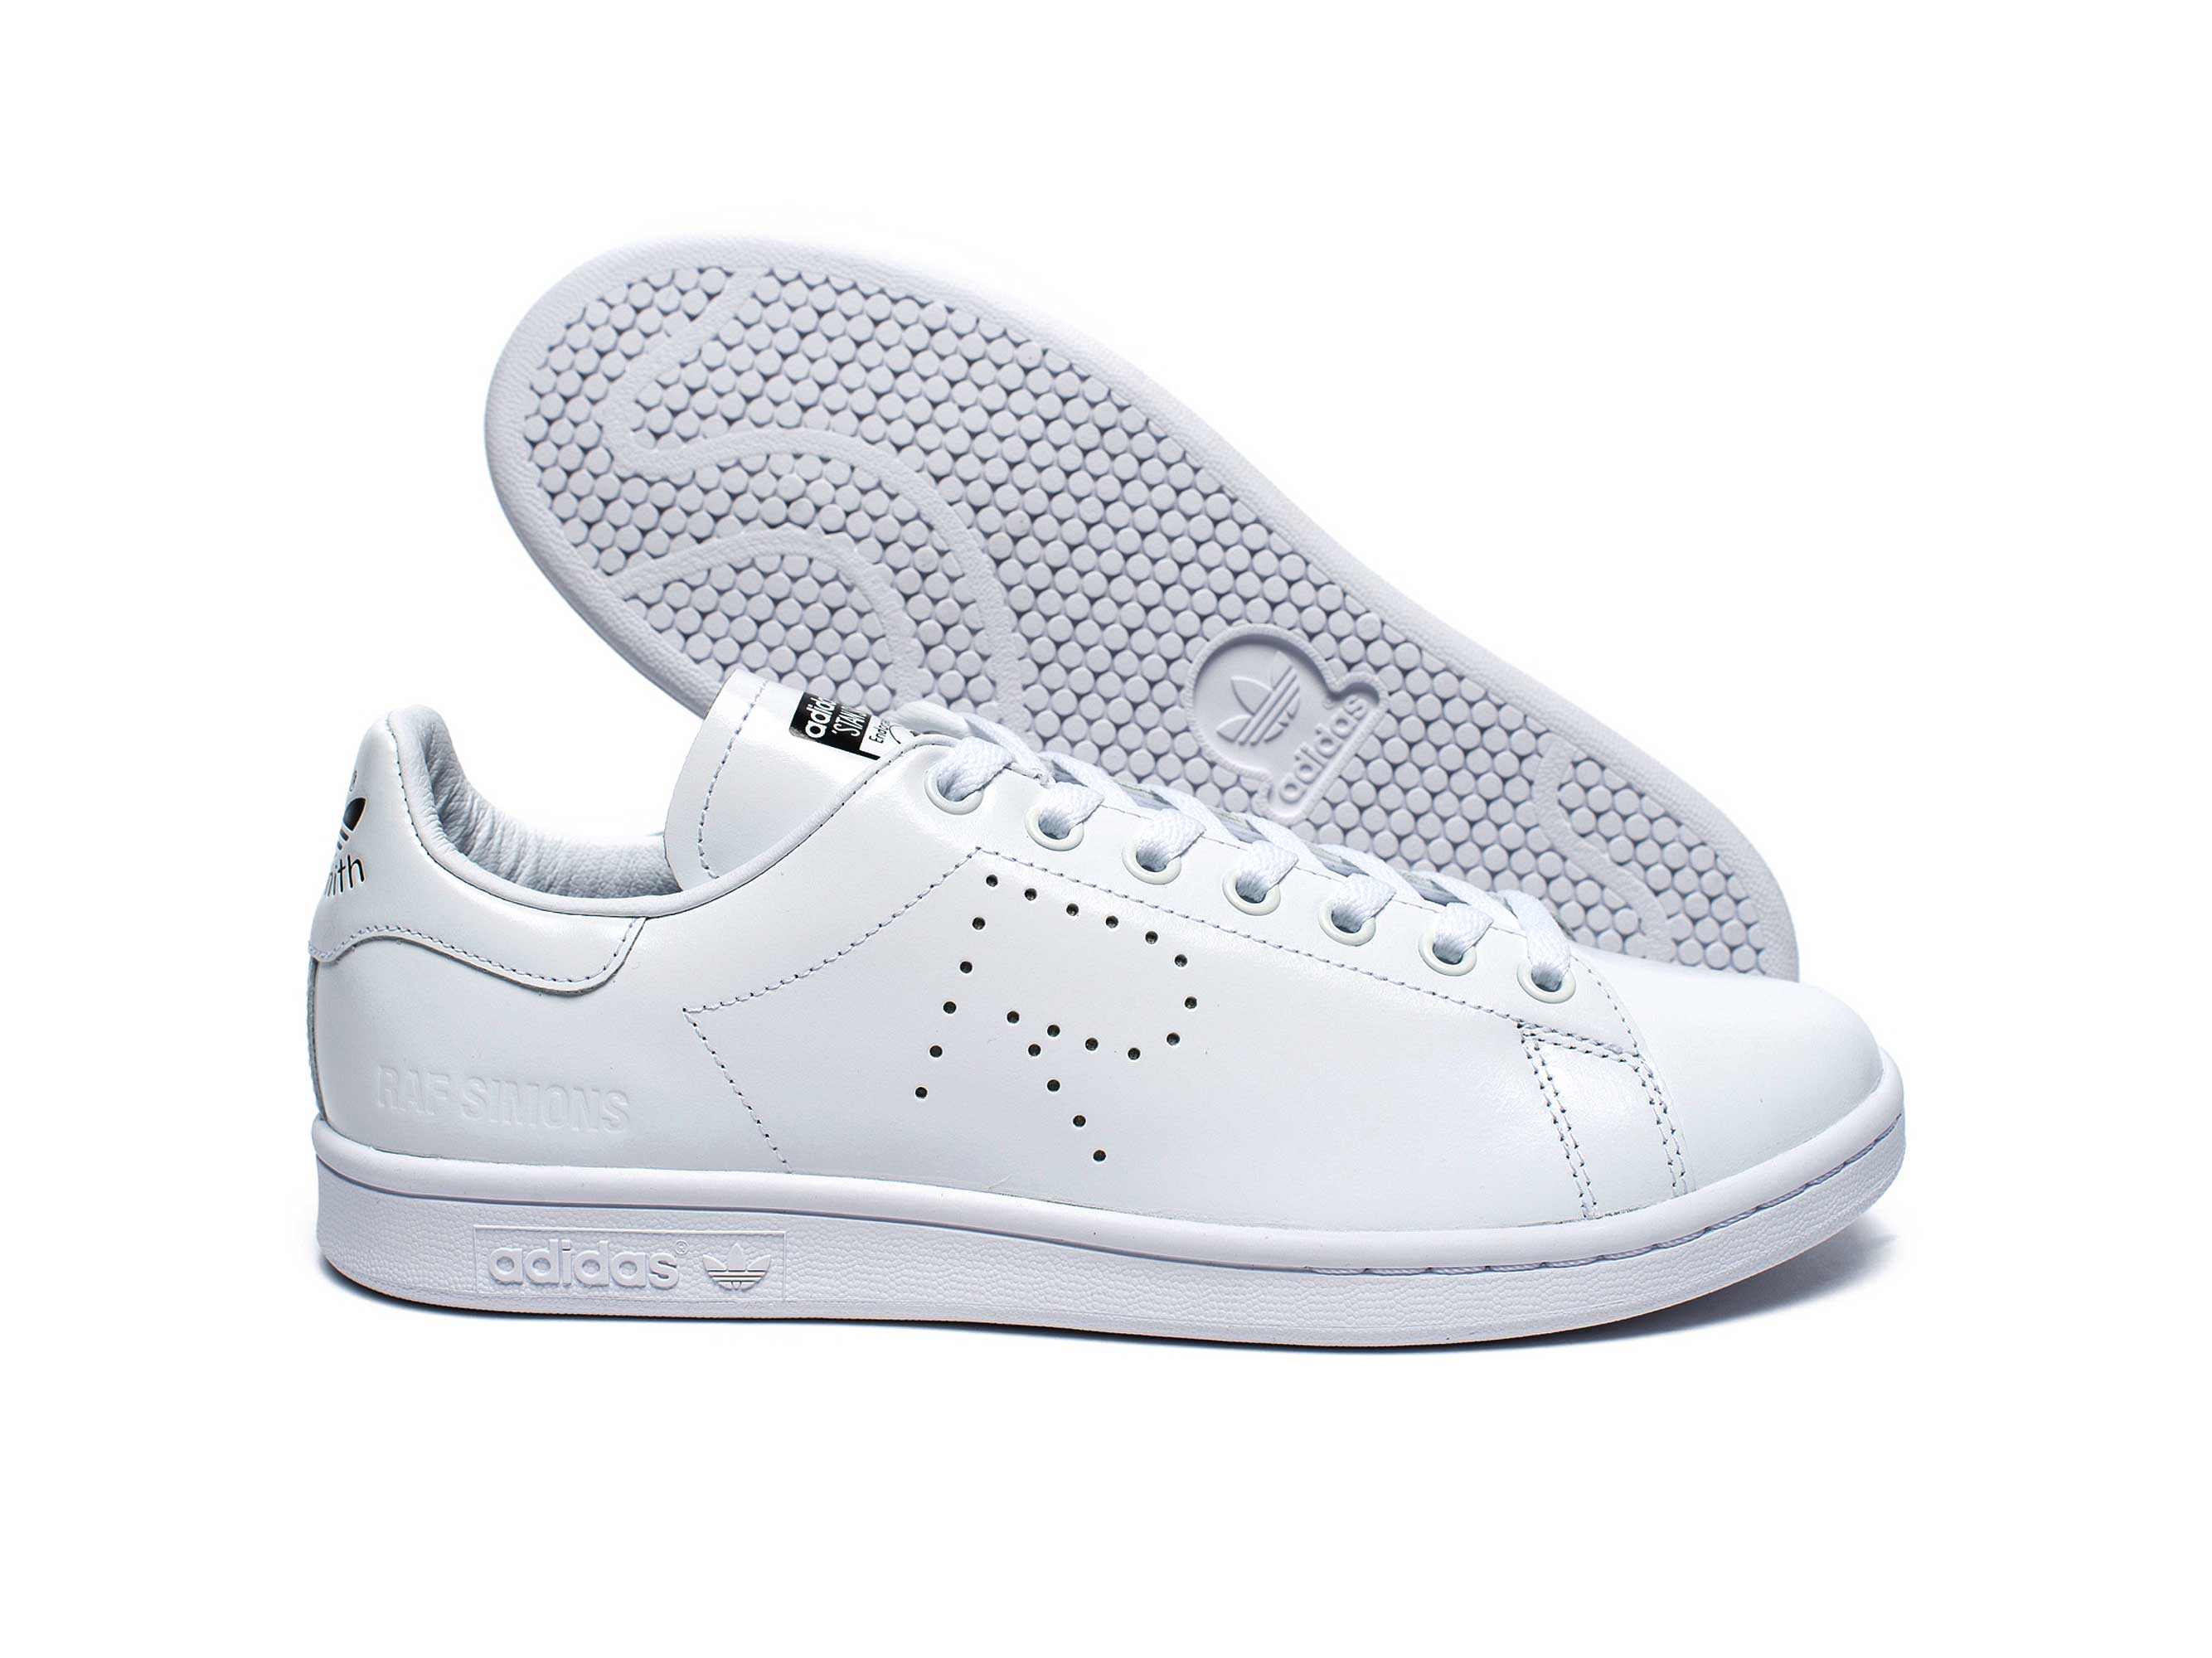 newest 4a42f a5495 adidas stan smith x raf simons white